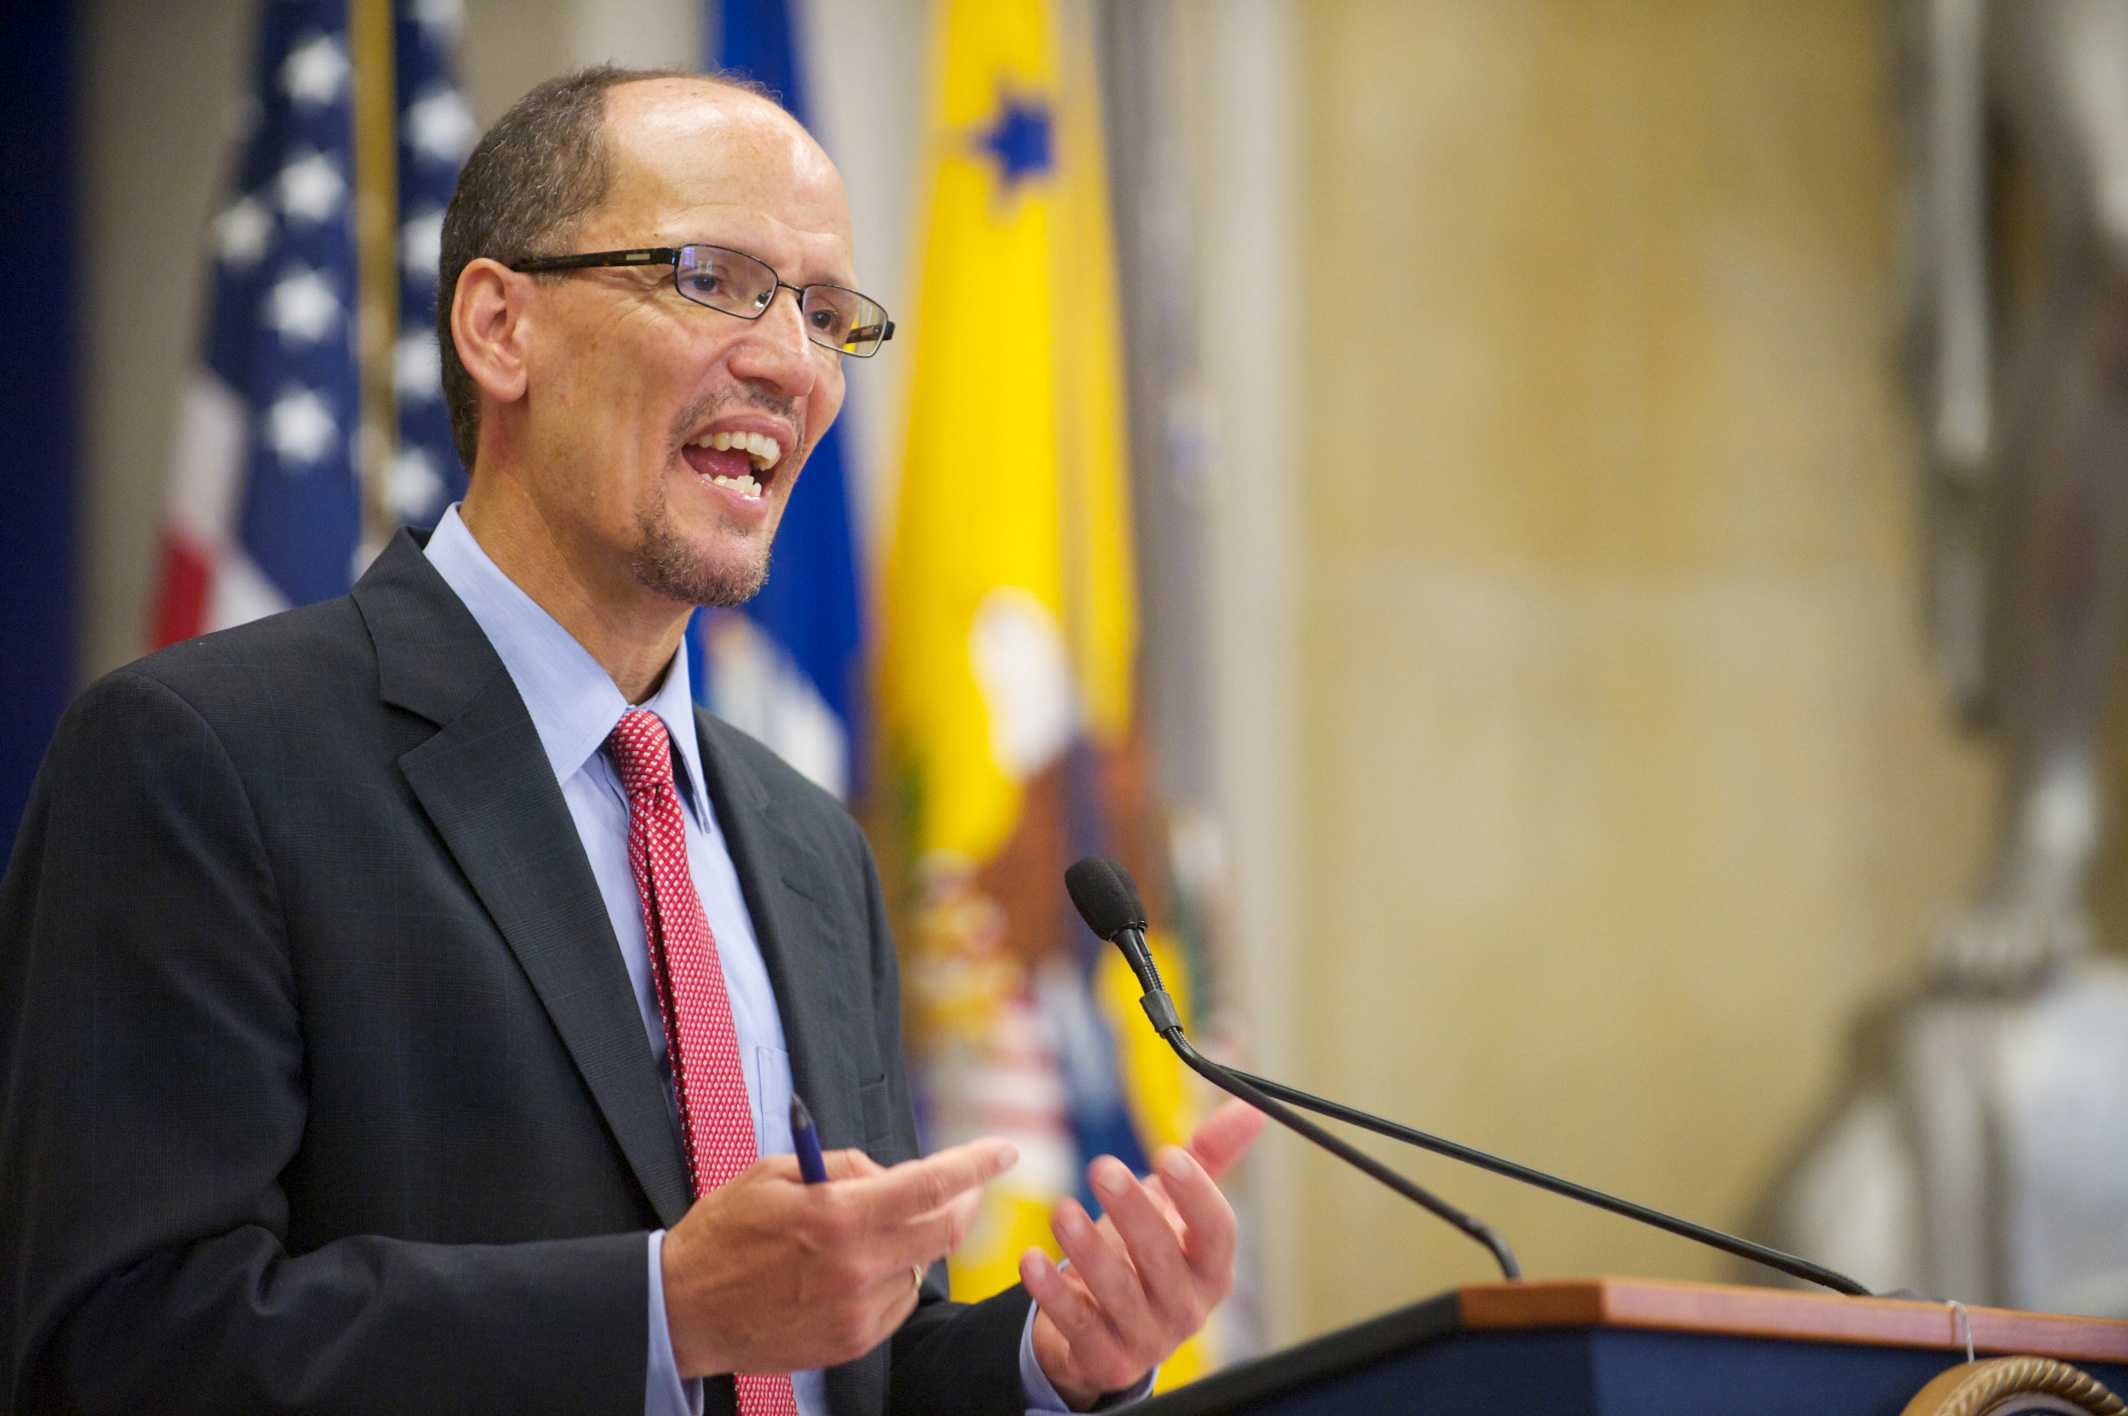 Tom Perez, the chairman of the Democratic National Convention